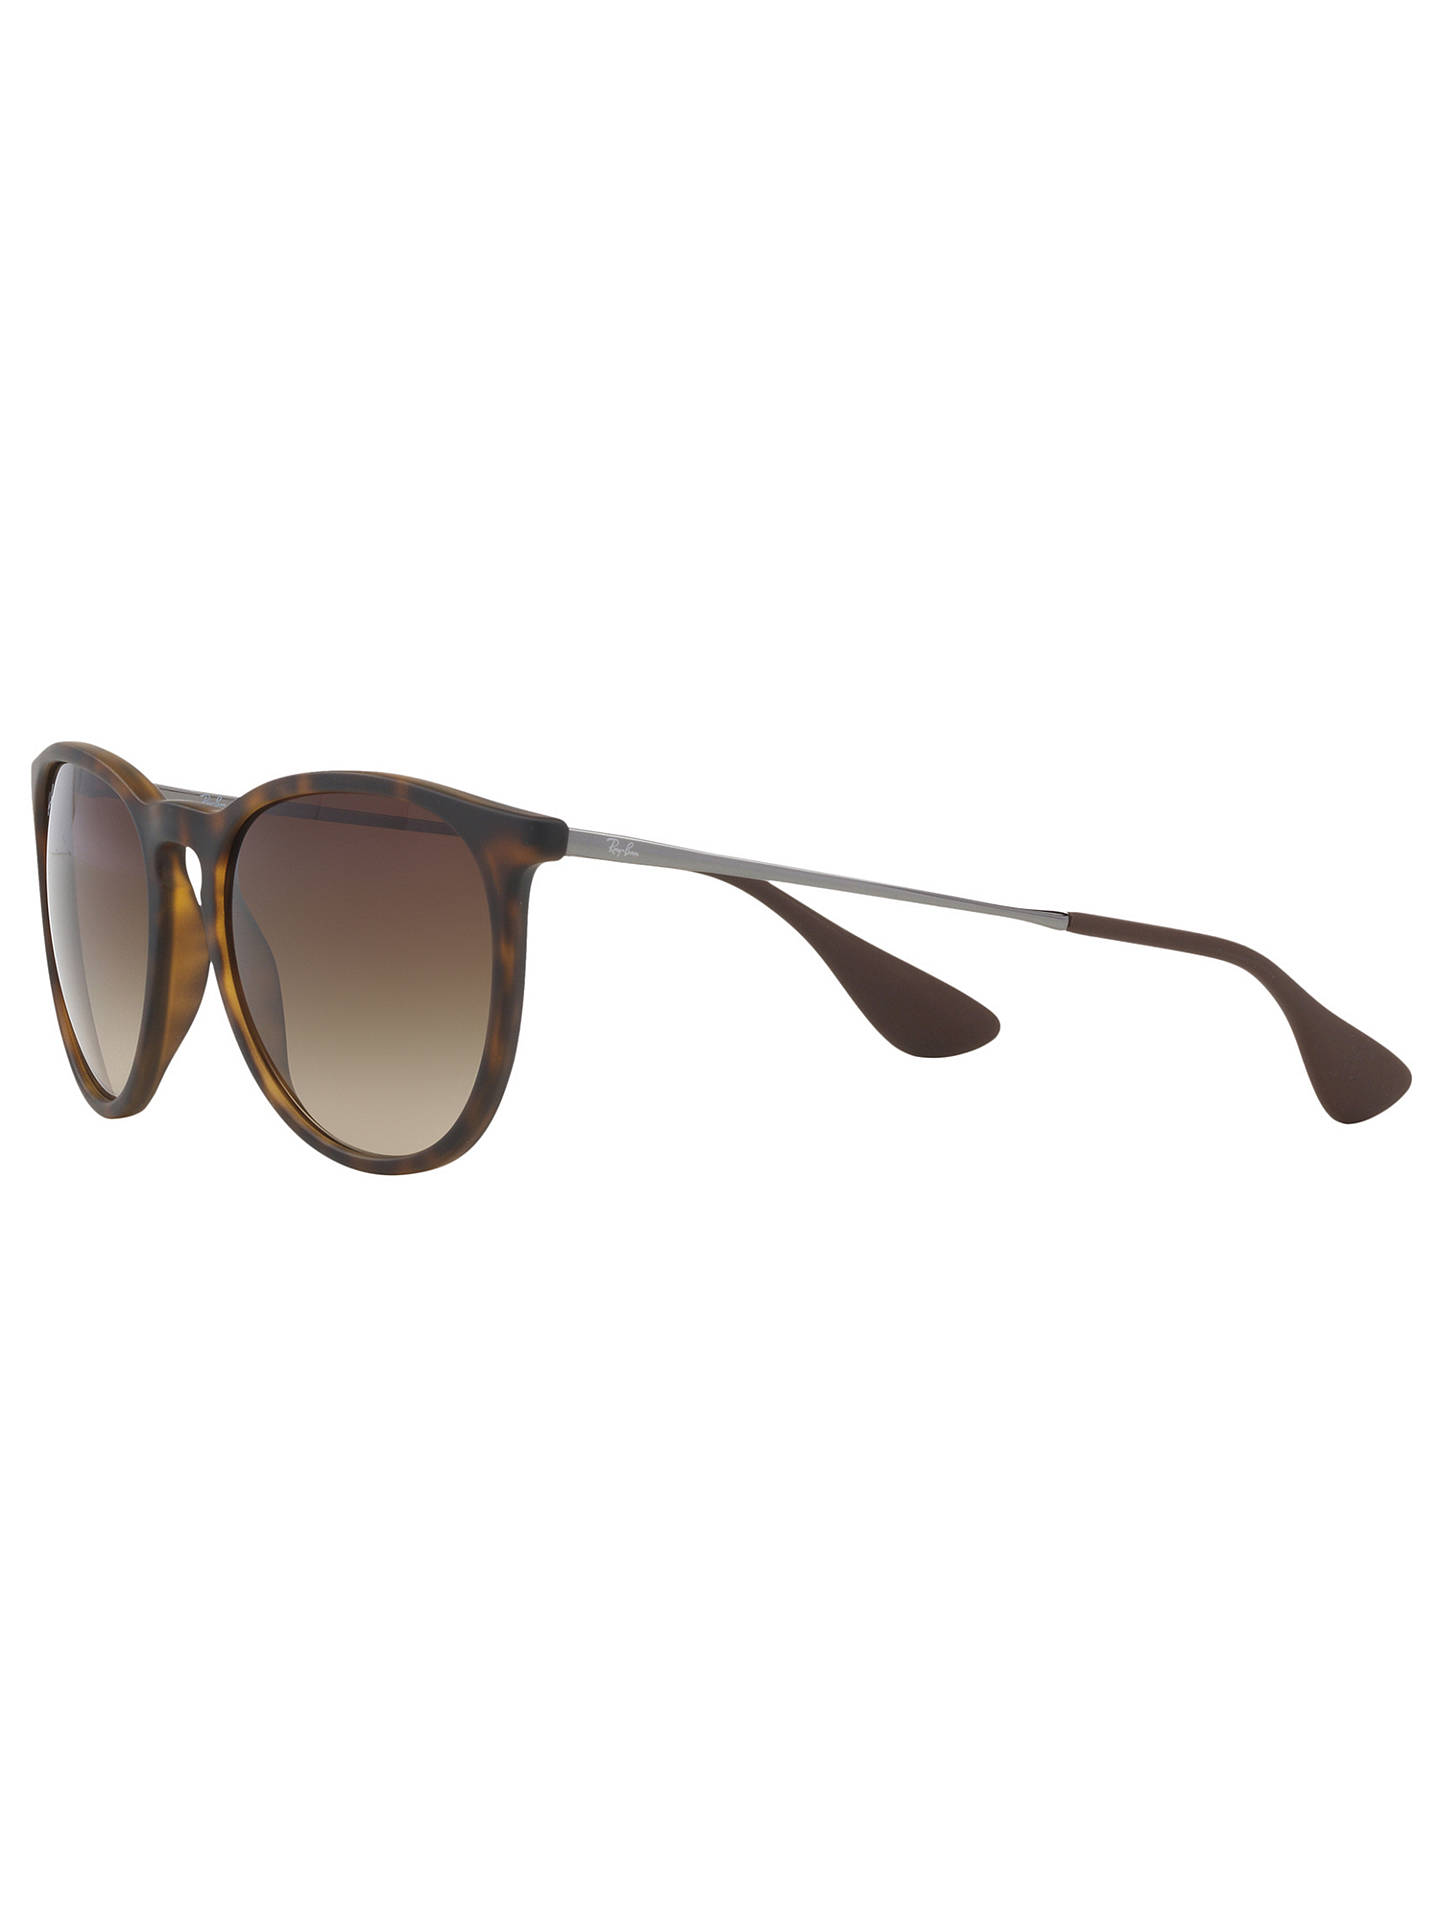 fd596f80d1 Buy Ray-Ban RB4171 Women s Erica Sunglasses